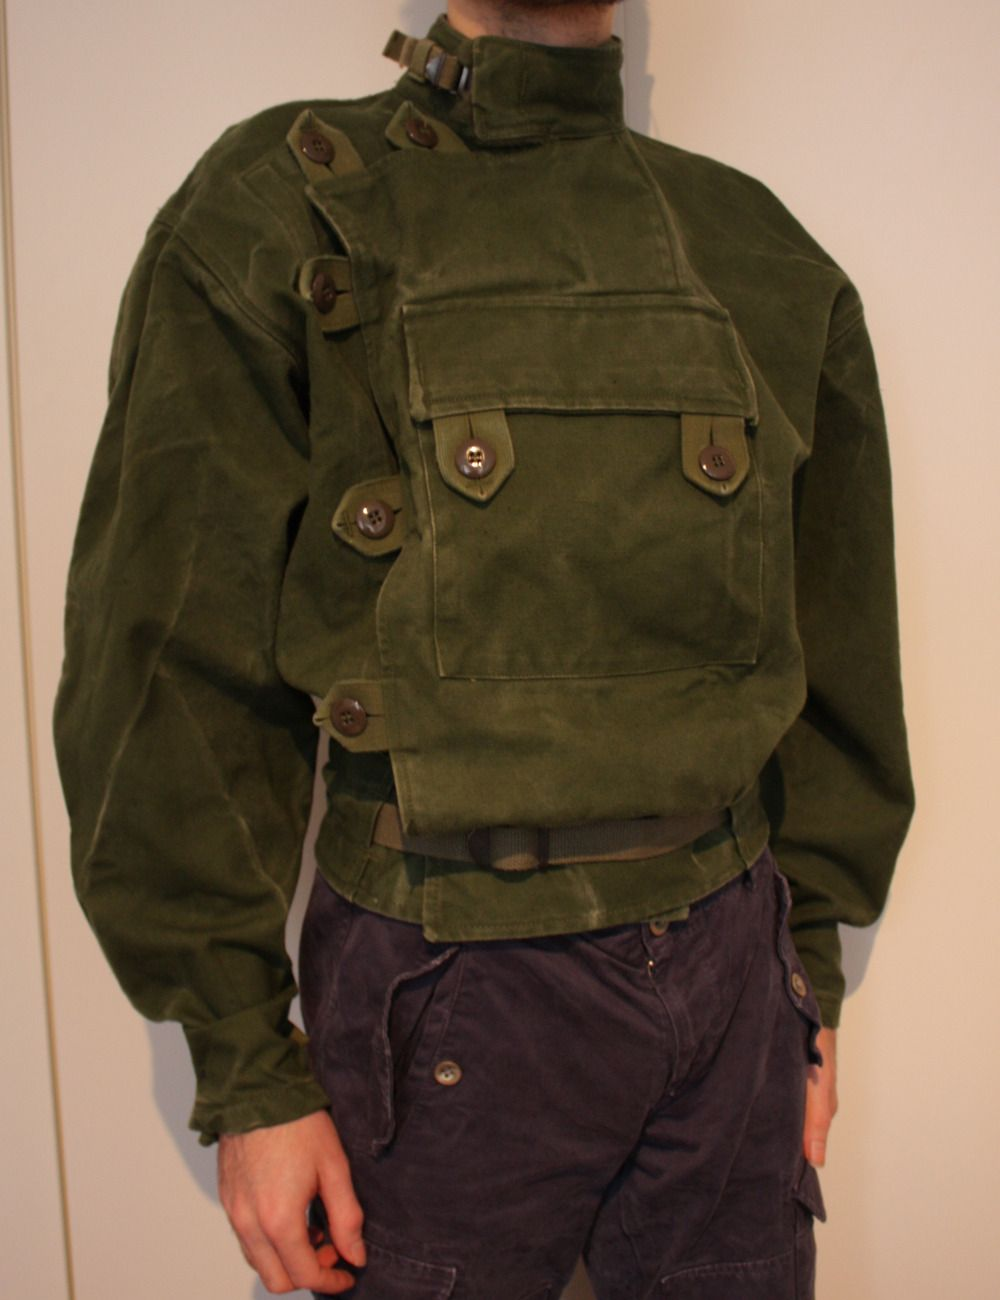 1961 Swedish Military Motorcycle Jacket Since I Wanted The Ultra Baggy Top But Slim Waist I Had To Detach And Re Baggy Tops Military Motorcycle Cotton Jacket